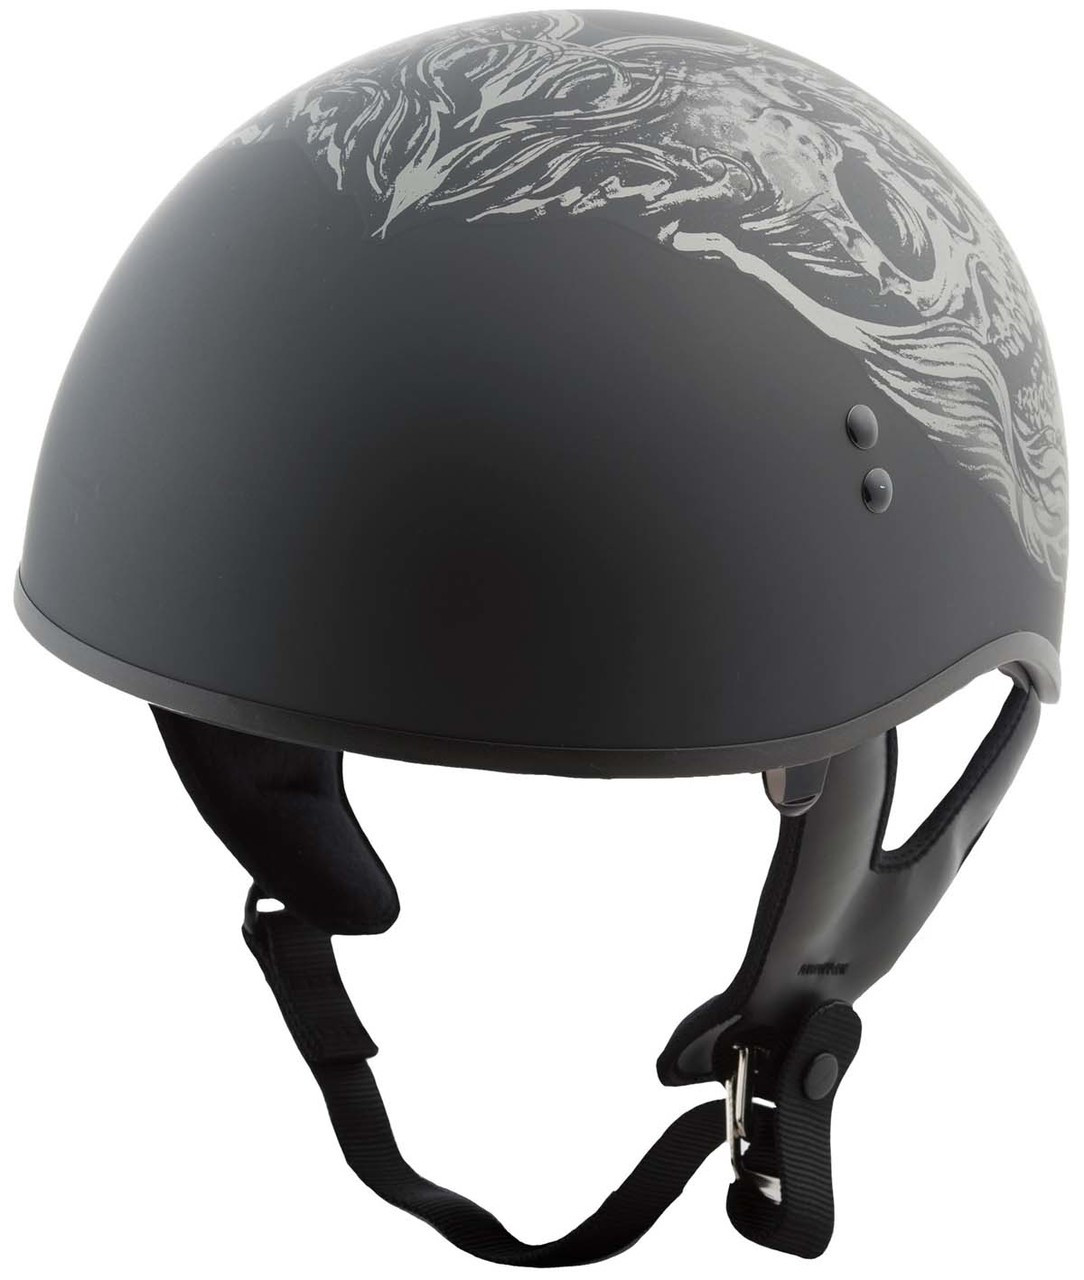 GMAX HH-65 Ghost/Rip Naked X-Small Matte Black/Silver Half